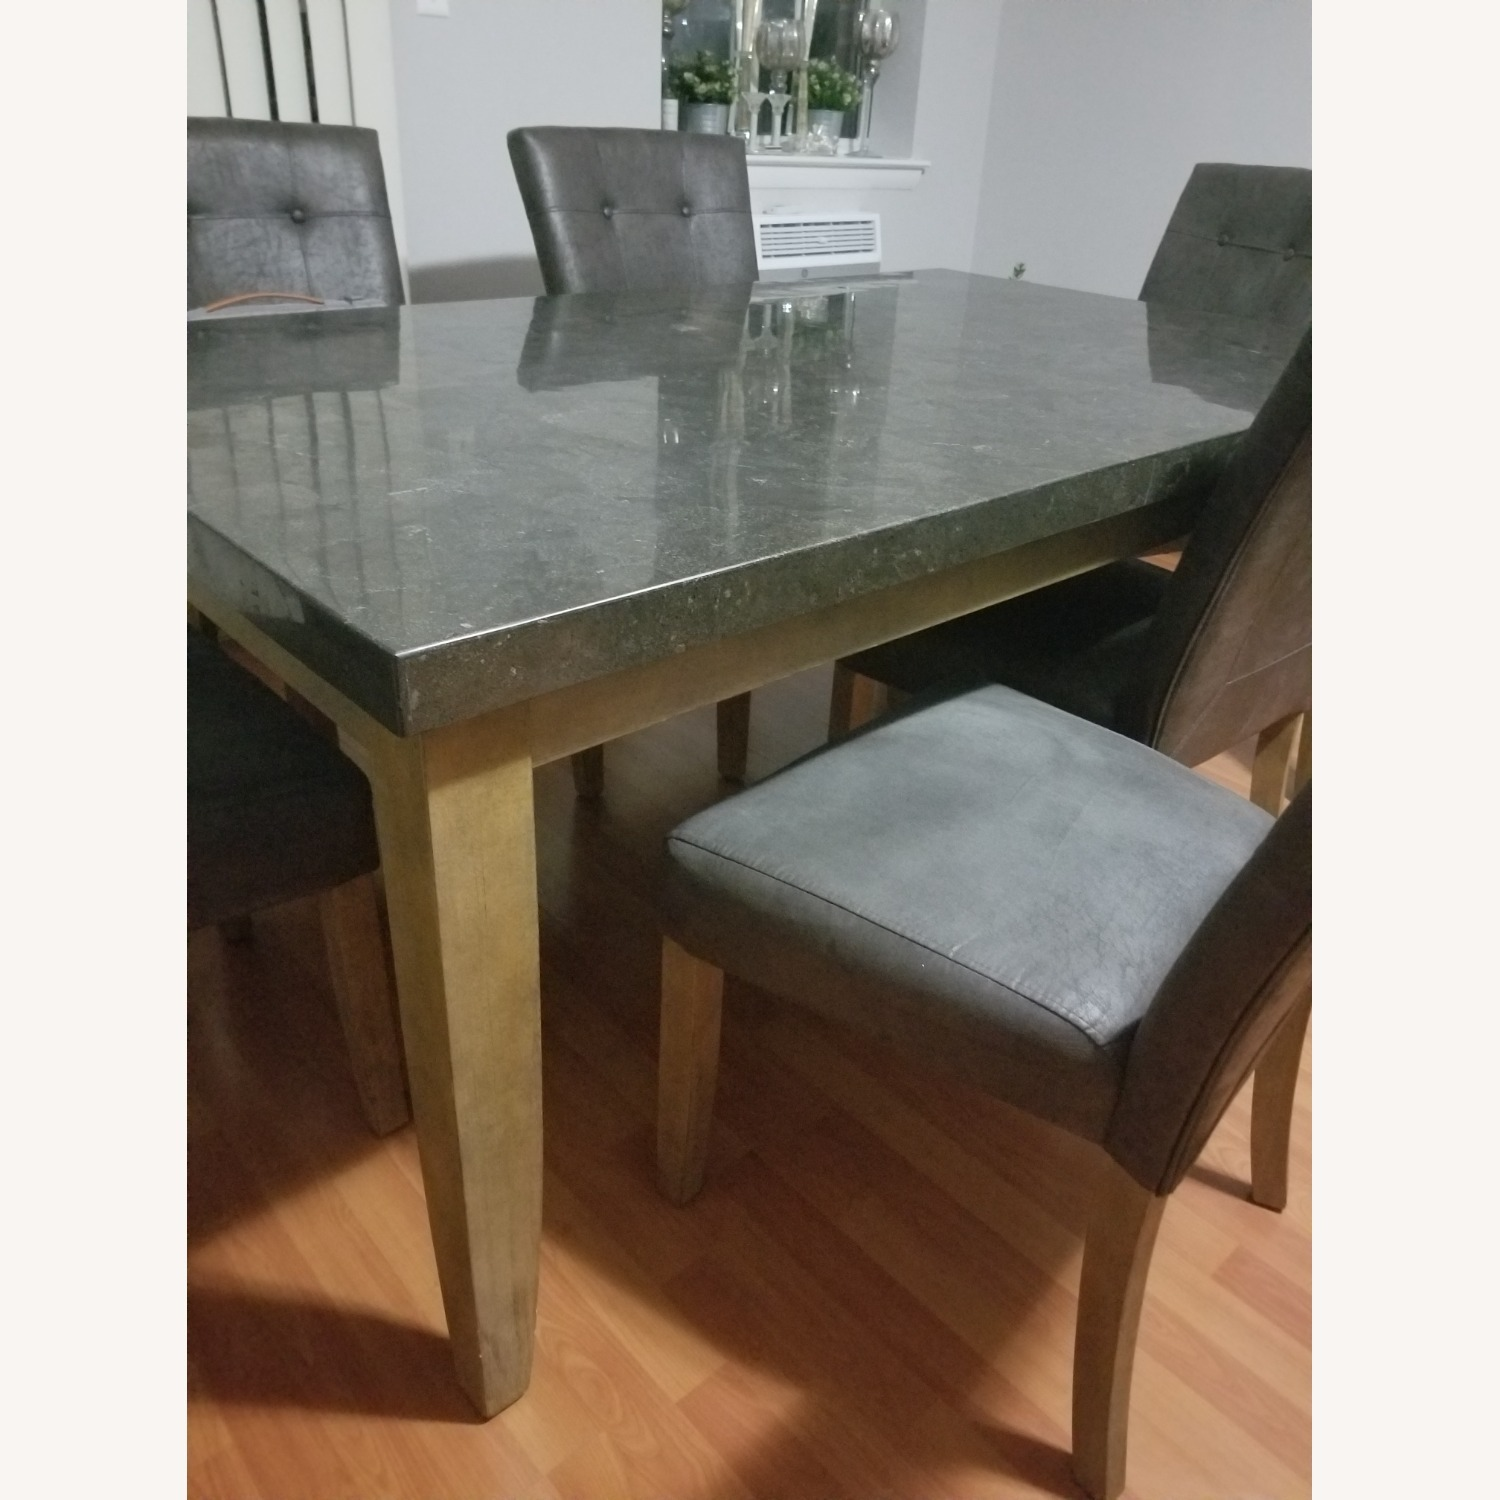 Bob's Discount Granite Table Dining Set with 6 Chairs - image-3